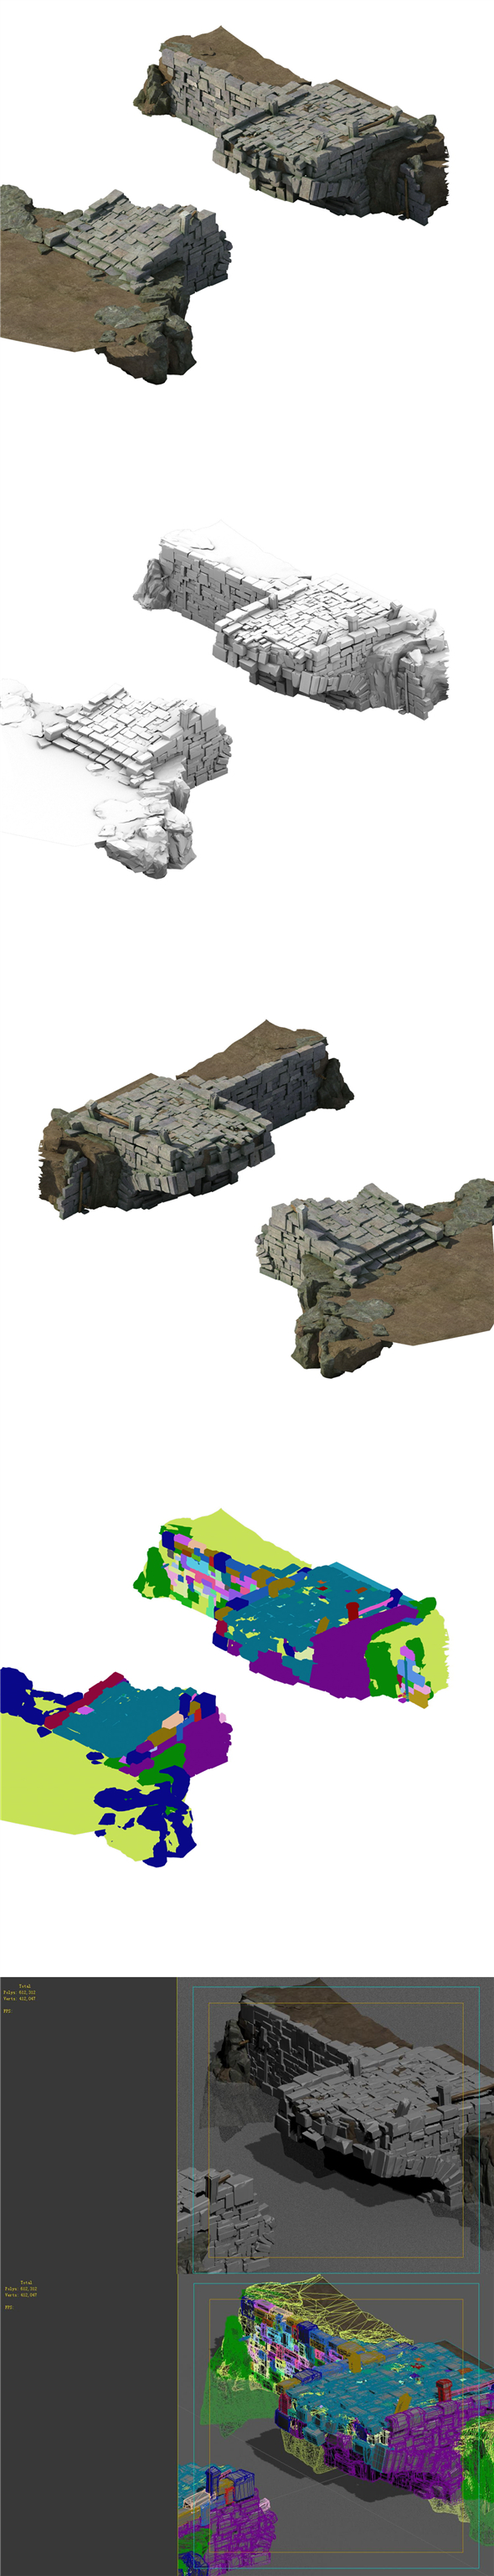 Village - broken stone bridge - 3DOcean Item for Sale